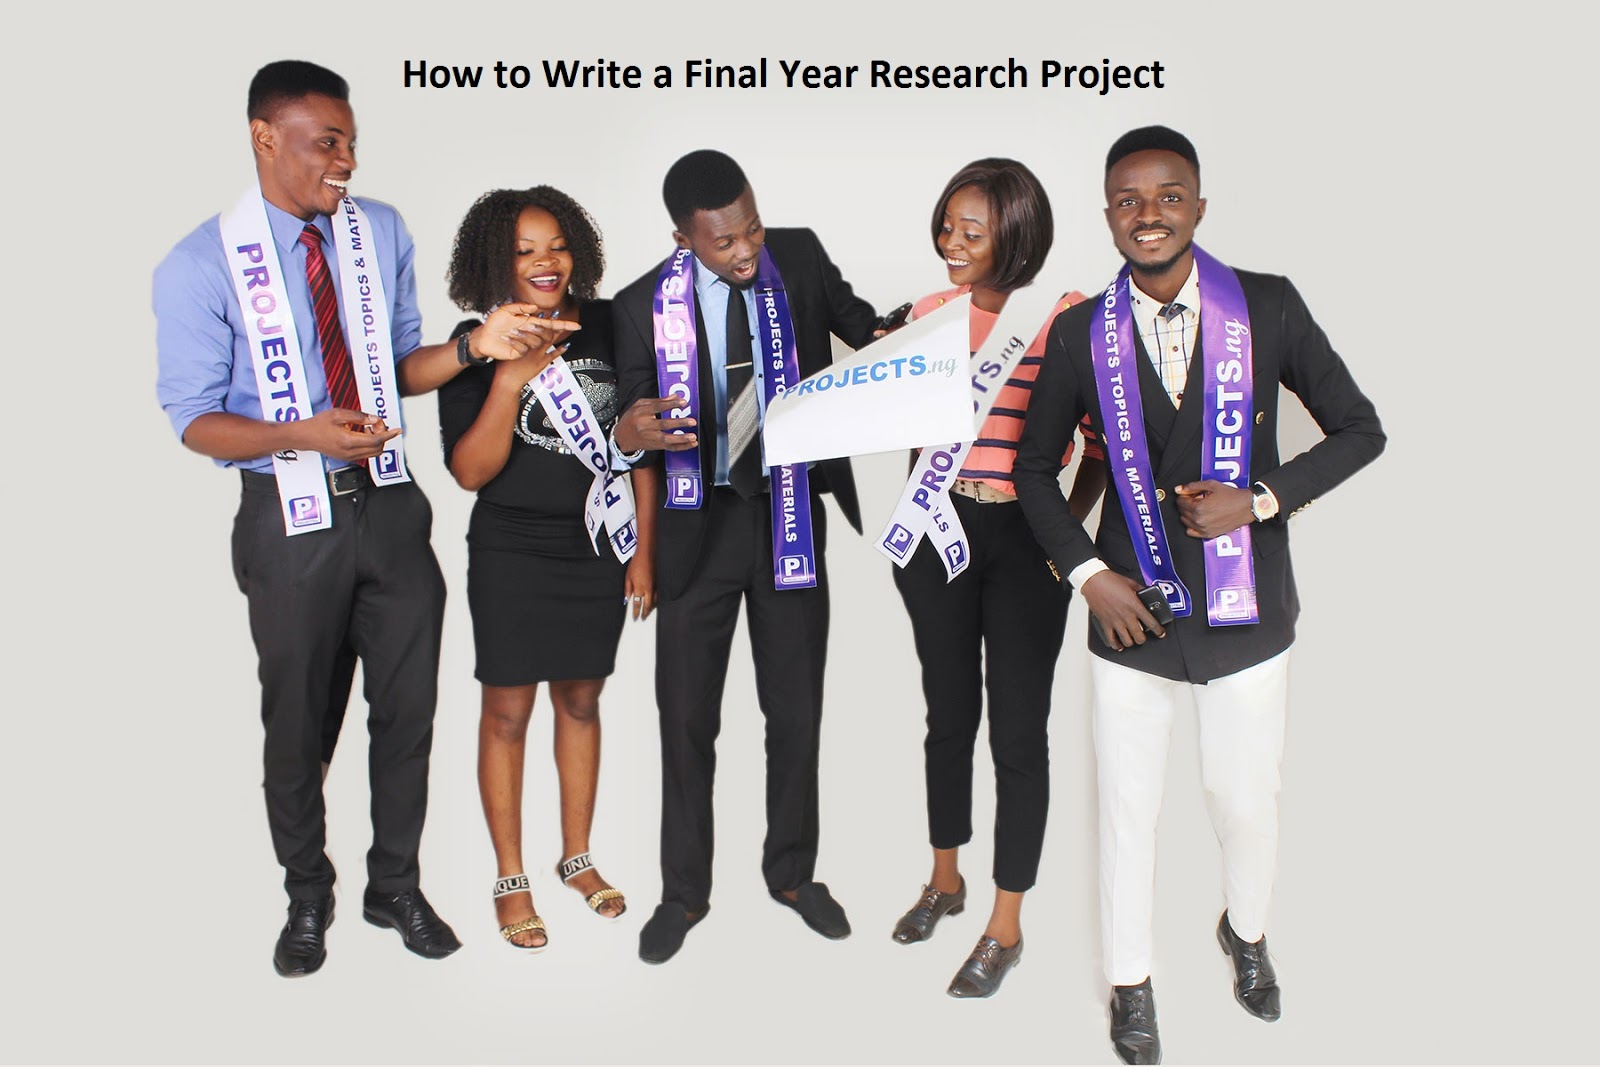 How to Write a Research Project or Dissertation in Nigeria - A Comprehensive Guide